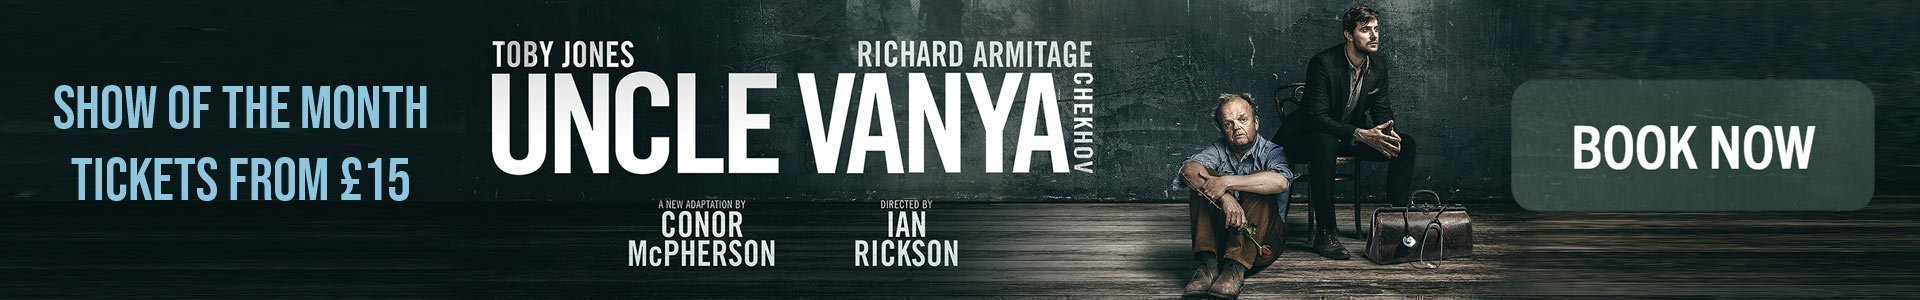 Uncle Vanya - Show of the Month